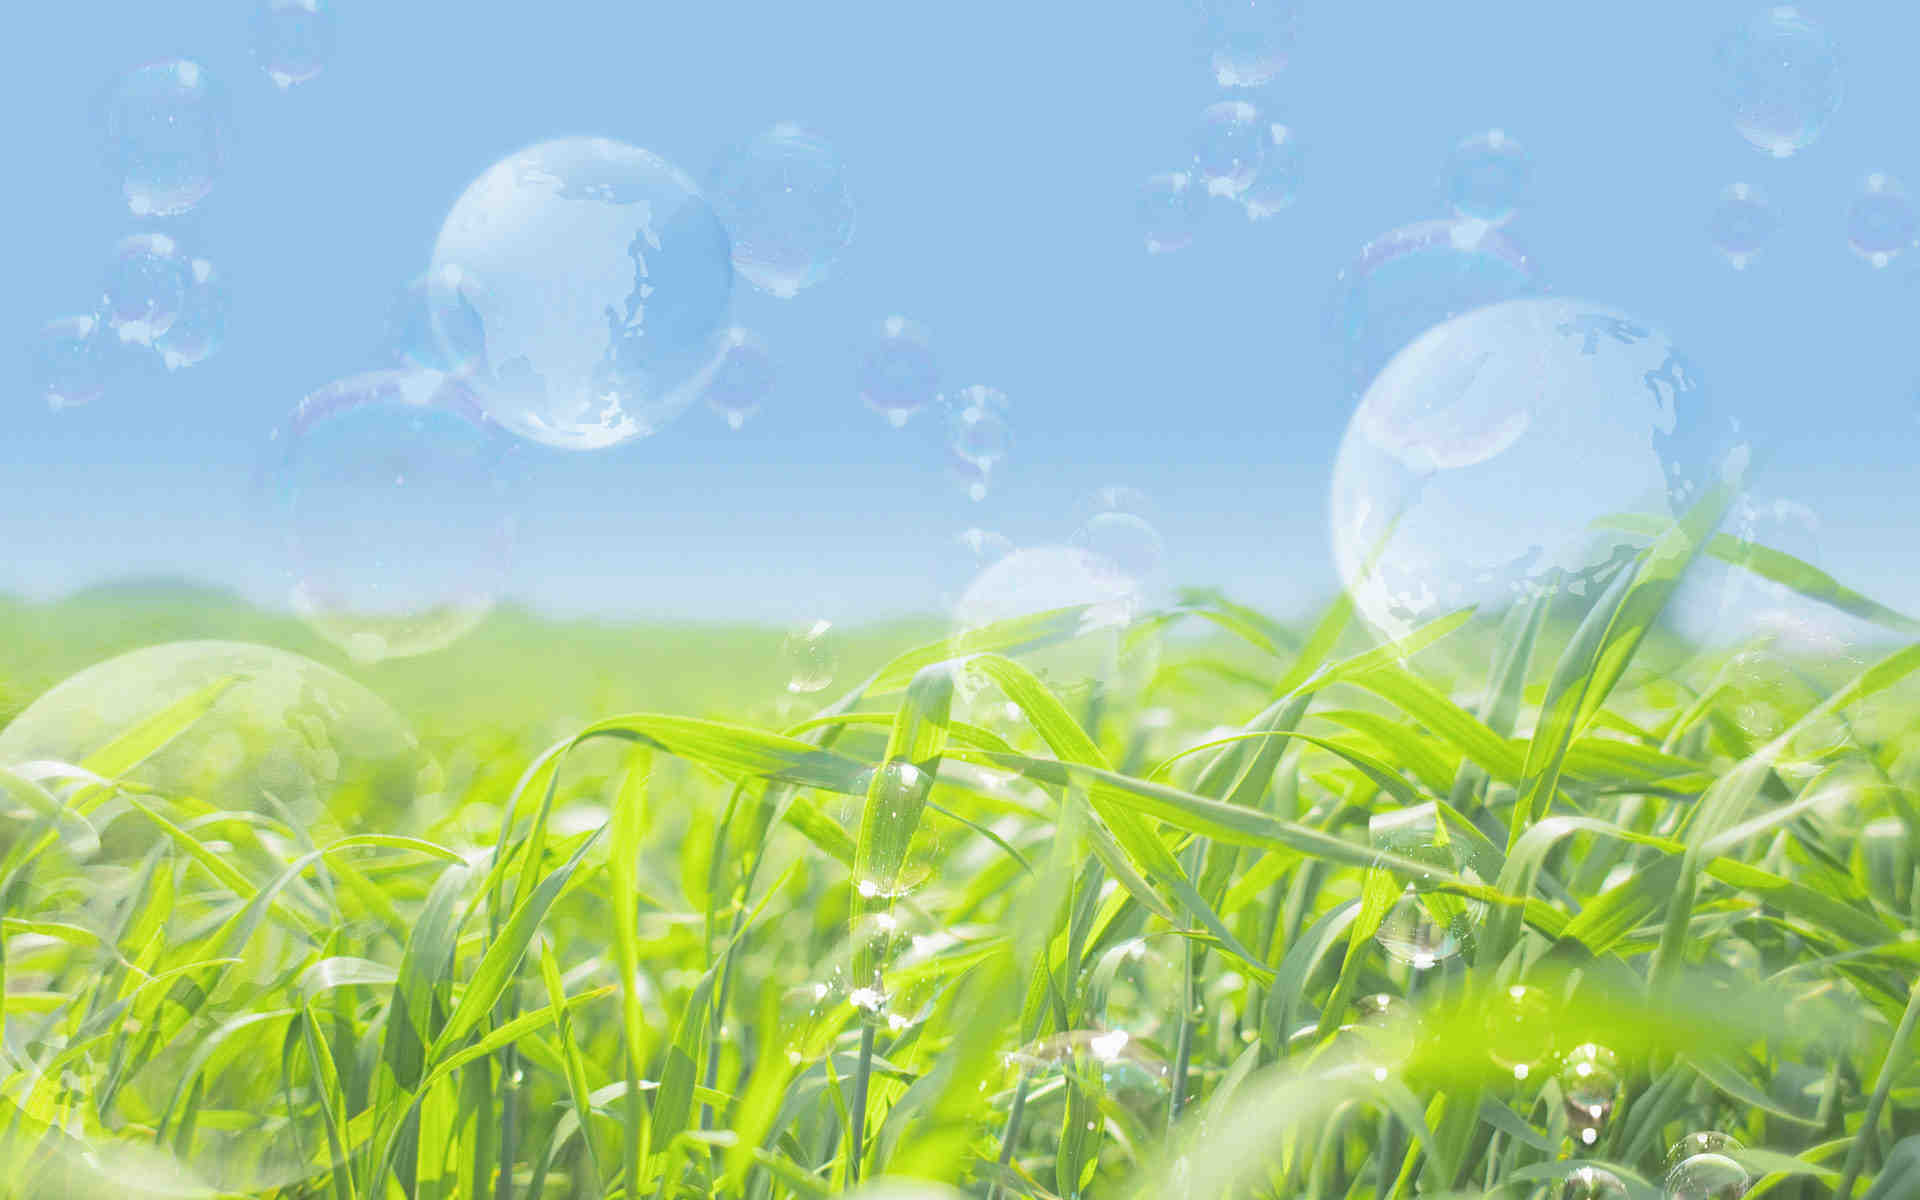 Transparent Bubbles Nature Wallpaper